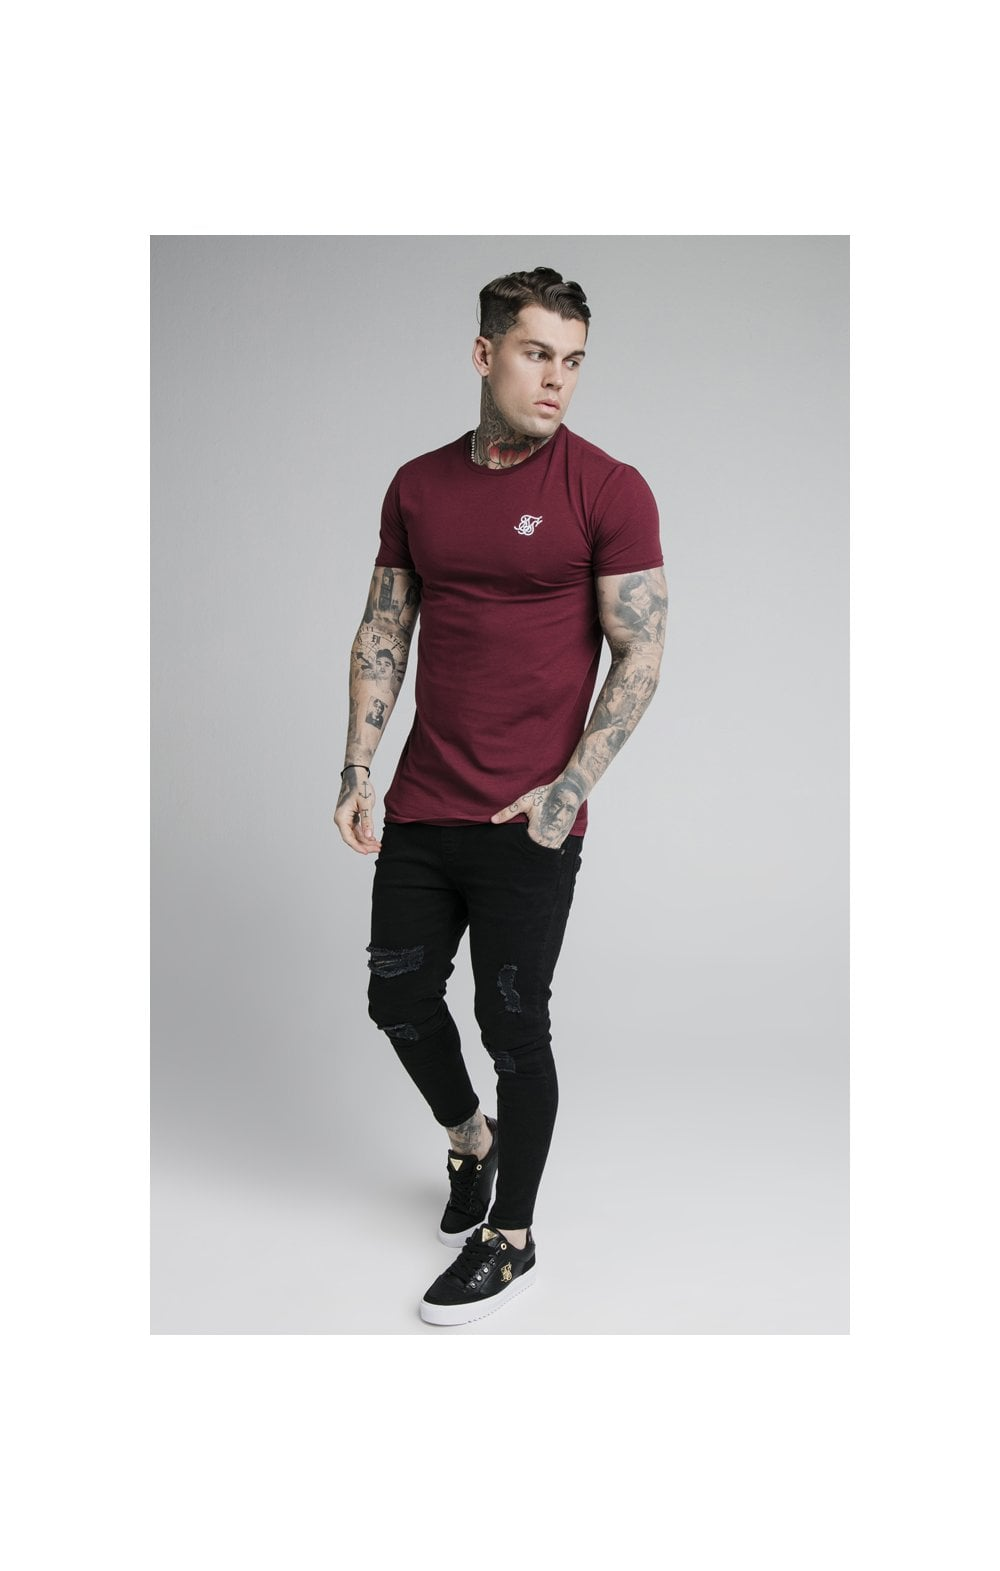 SikSilk Straight Hem Gym Tee - Burgundy (3)